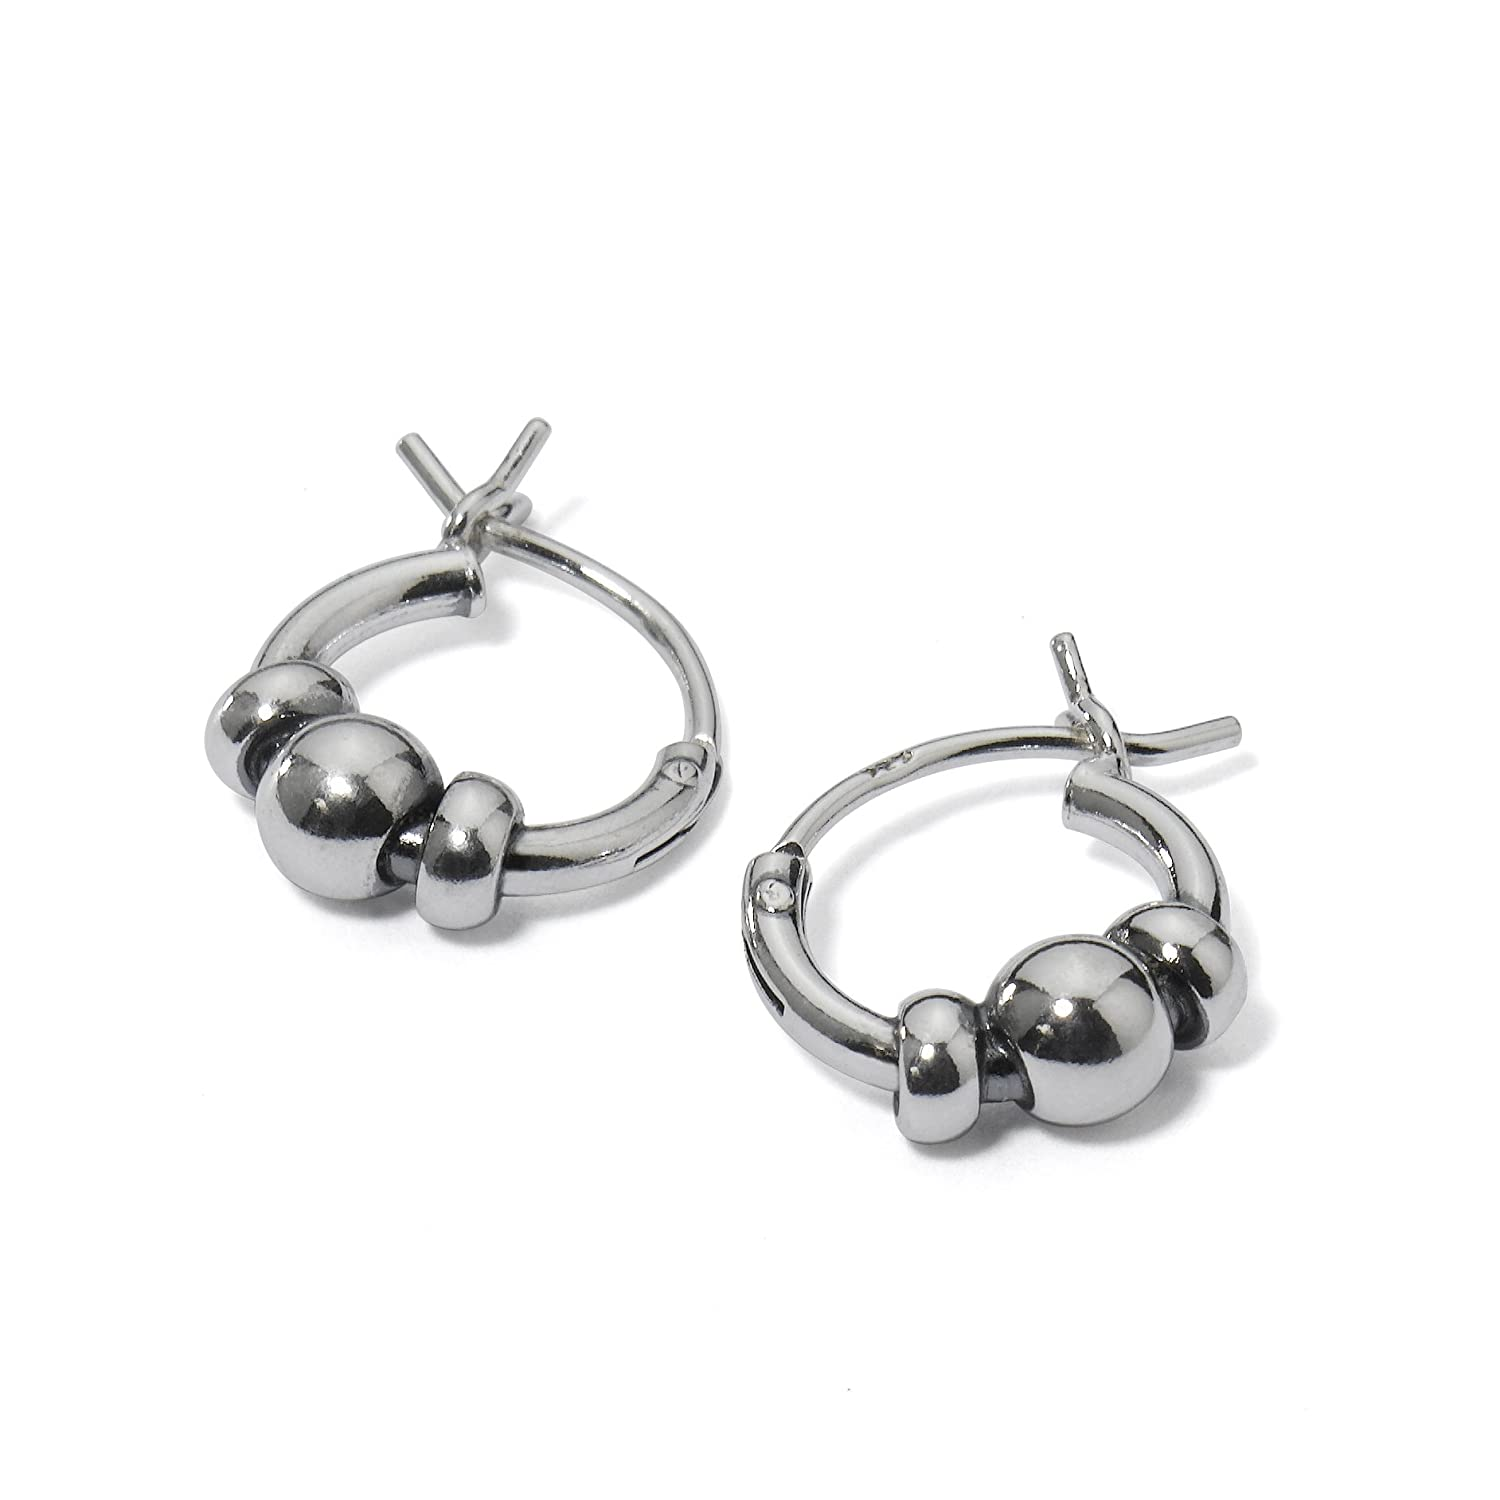 Sterling Silver Endless Earrings Unisex Image 1